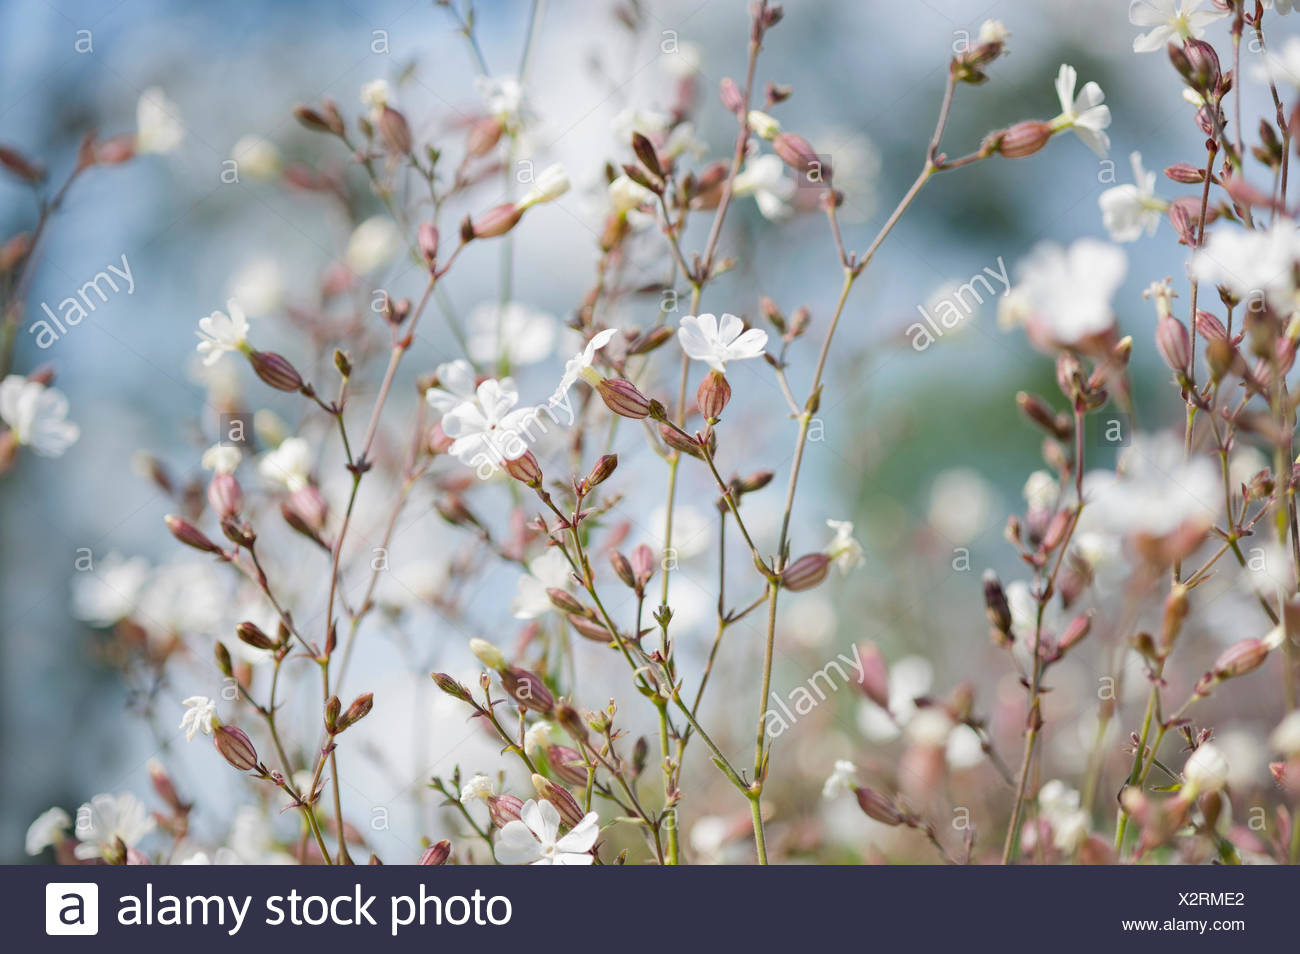 Campion, Lychnis flos-jovis. Side view of many slender stems with white flowers and pink calyxes against pale blue background. Stock Photo